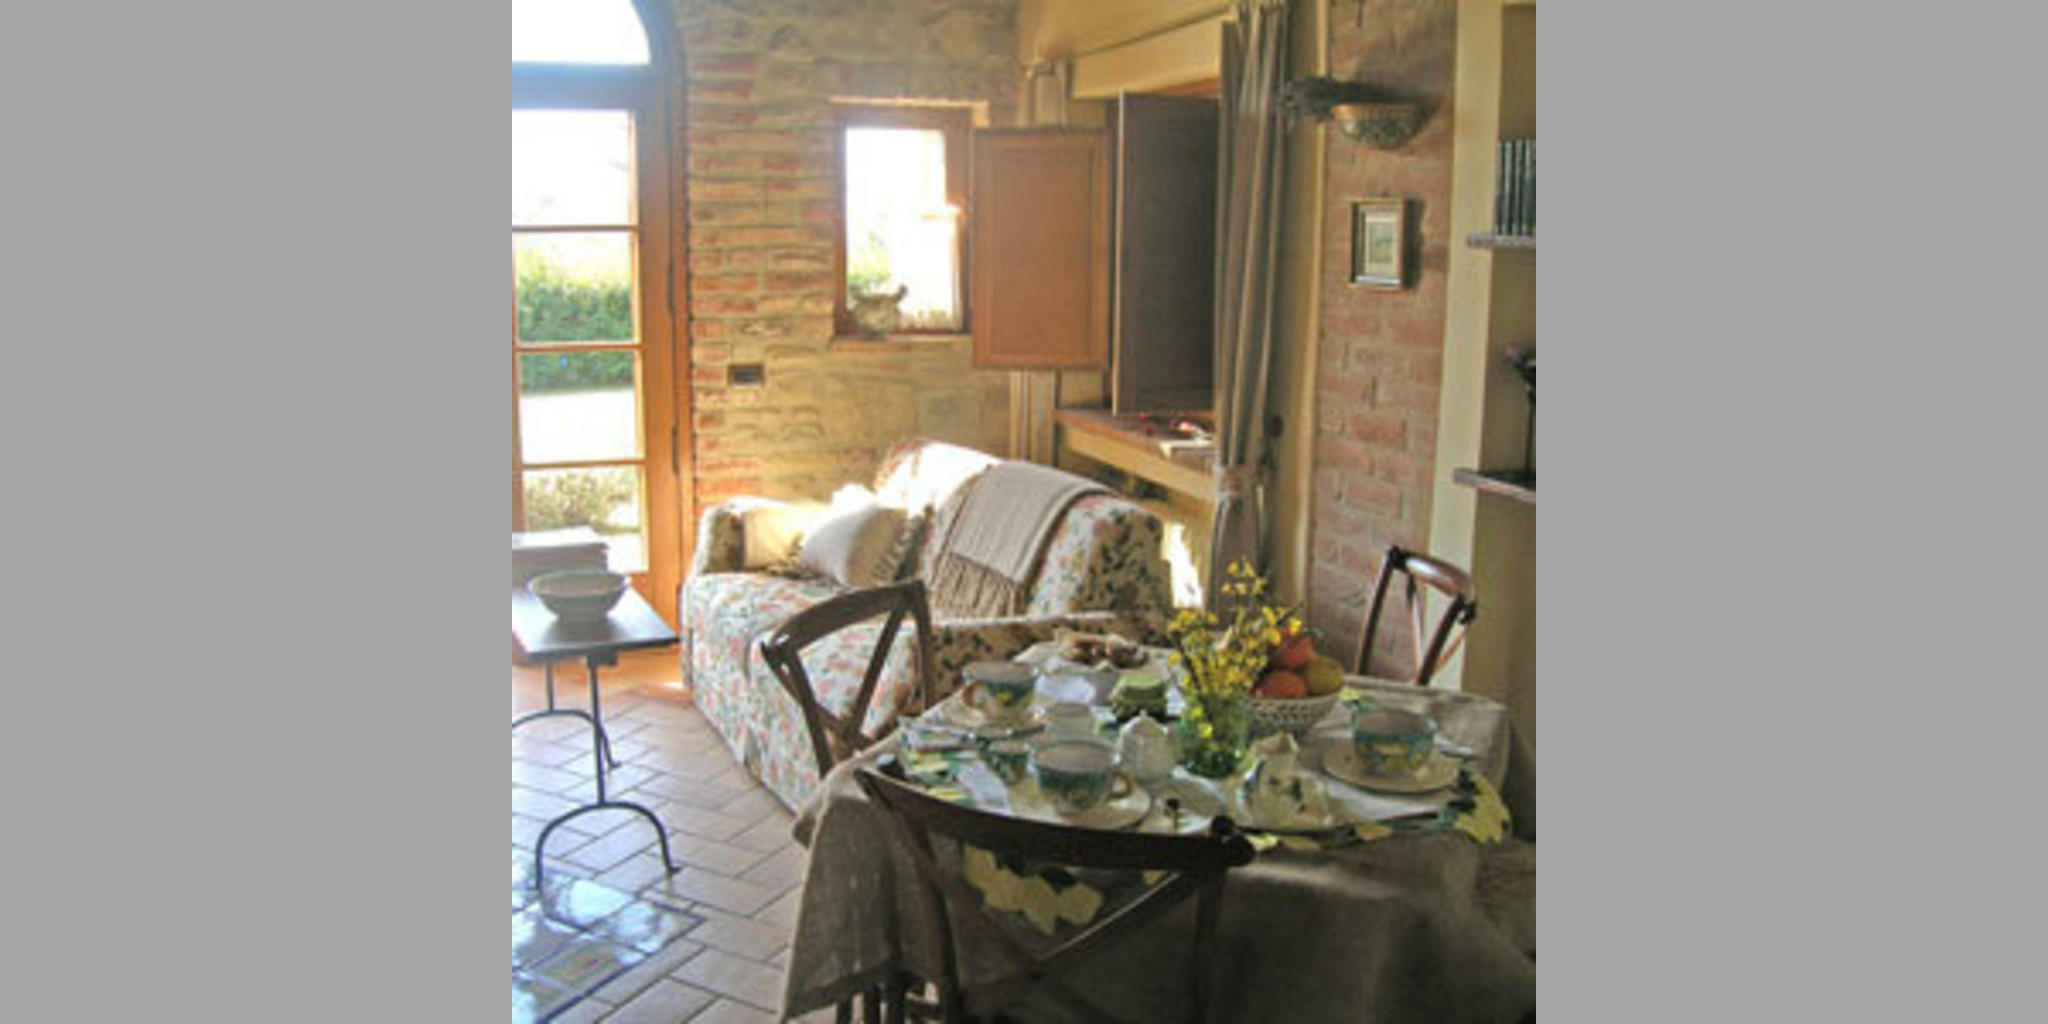 Bed & Breakfast Collazzone - Mandola1